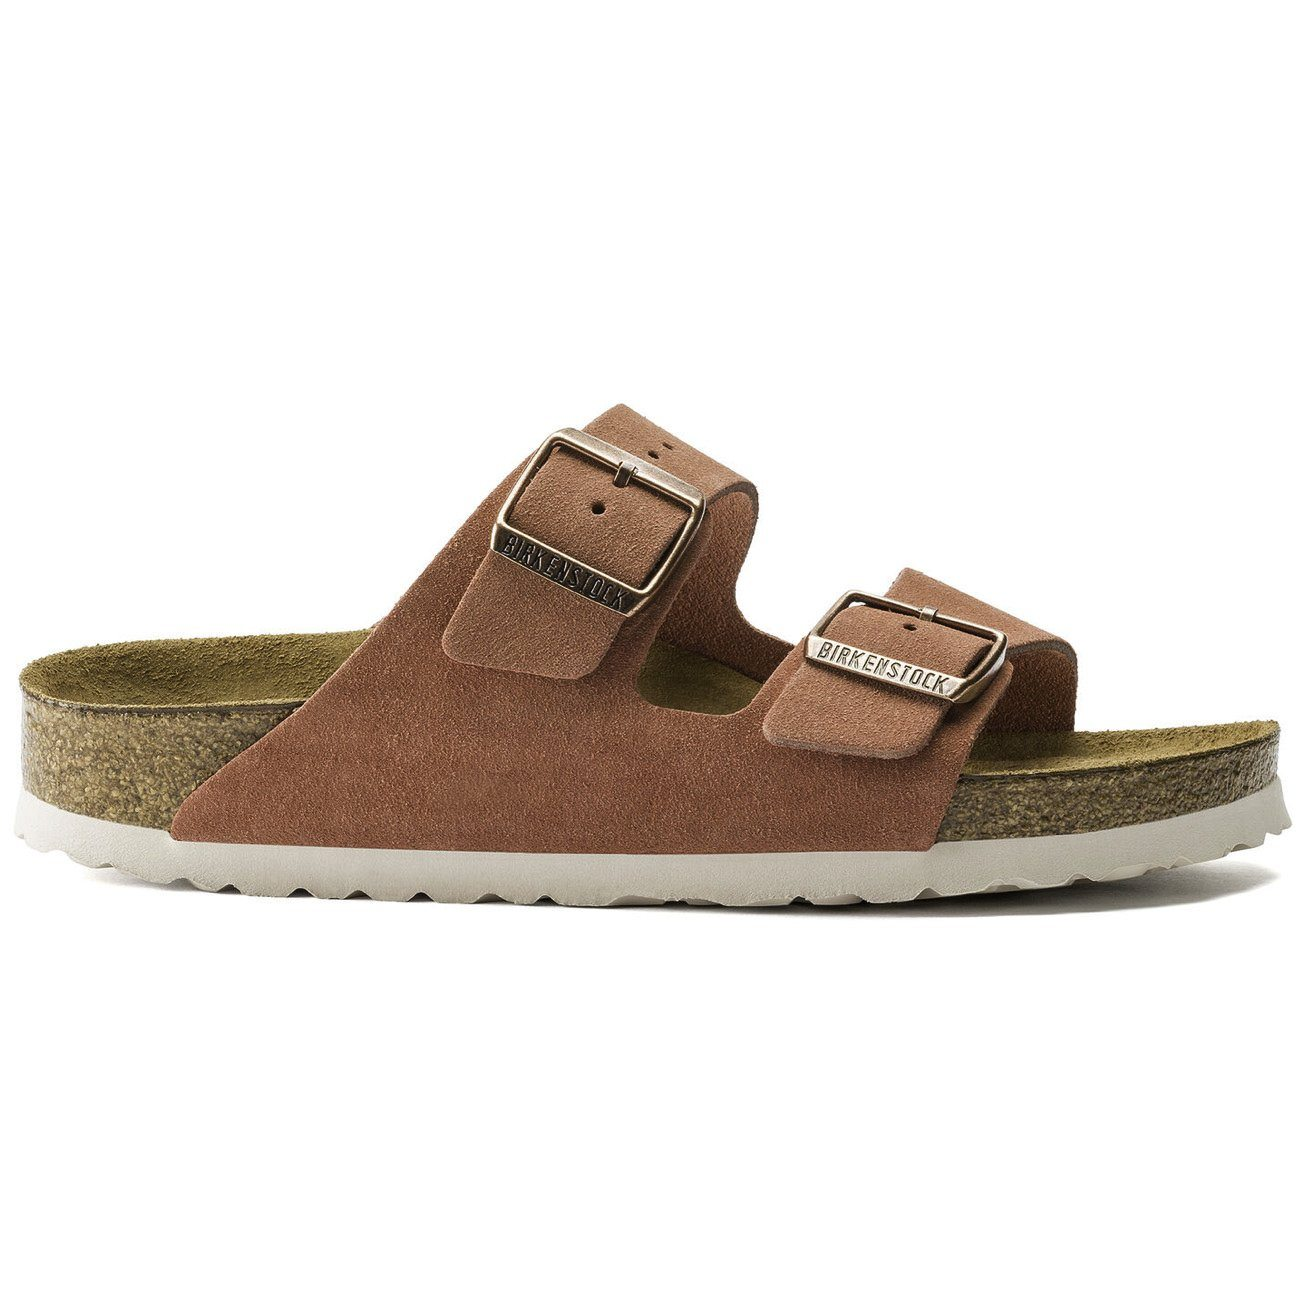 Birkenstock Seasonal, Arizona, Suede Leather, Soft Footbed, Regular Fit, Earth Red Sandals Birkenstock Seasonal